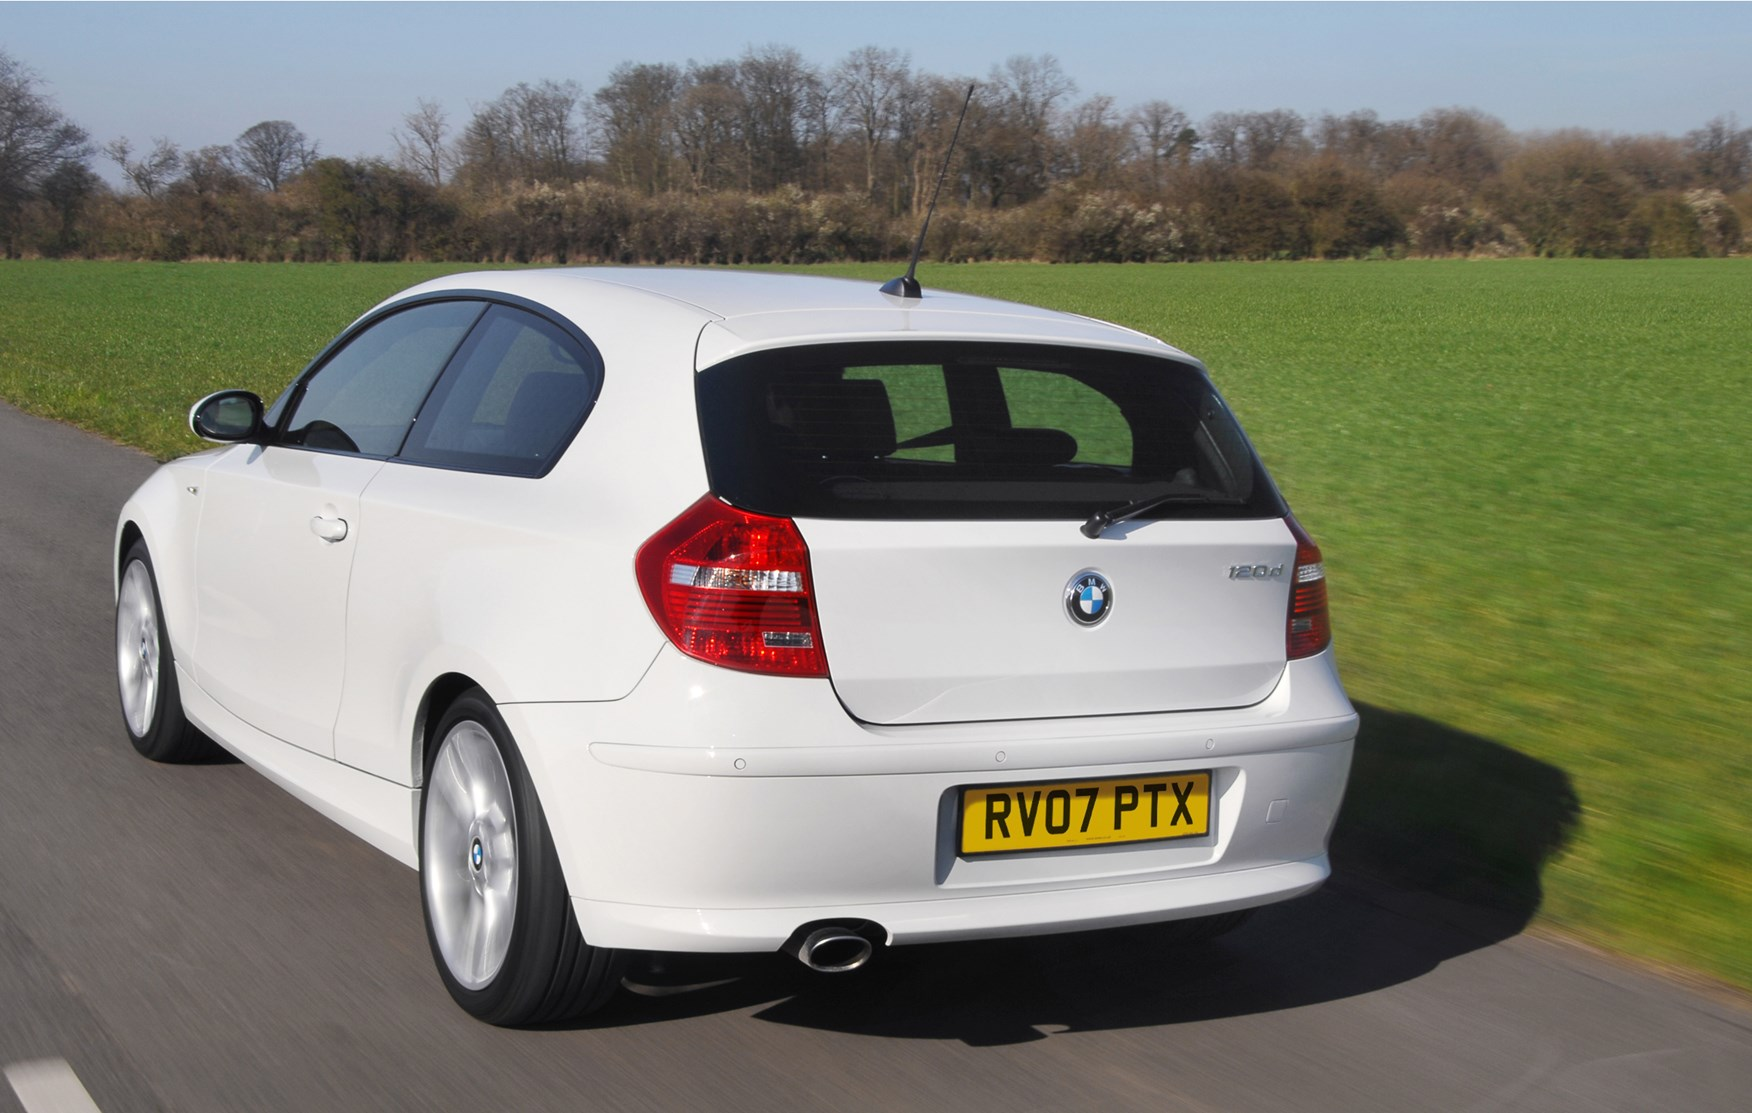 Used Bmw 1 Series Hatchback 2004 2011 Review Parkers